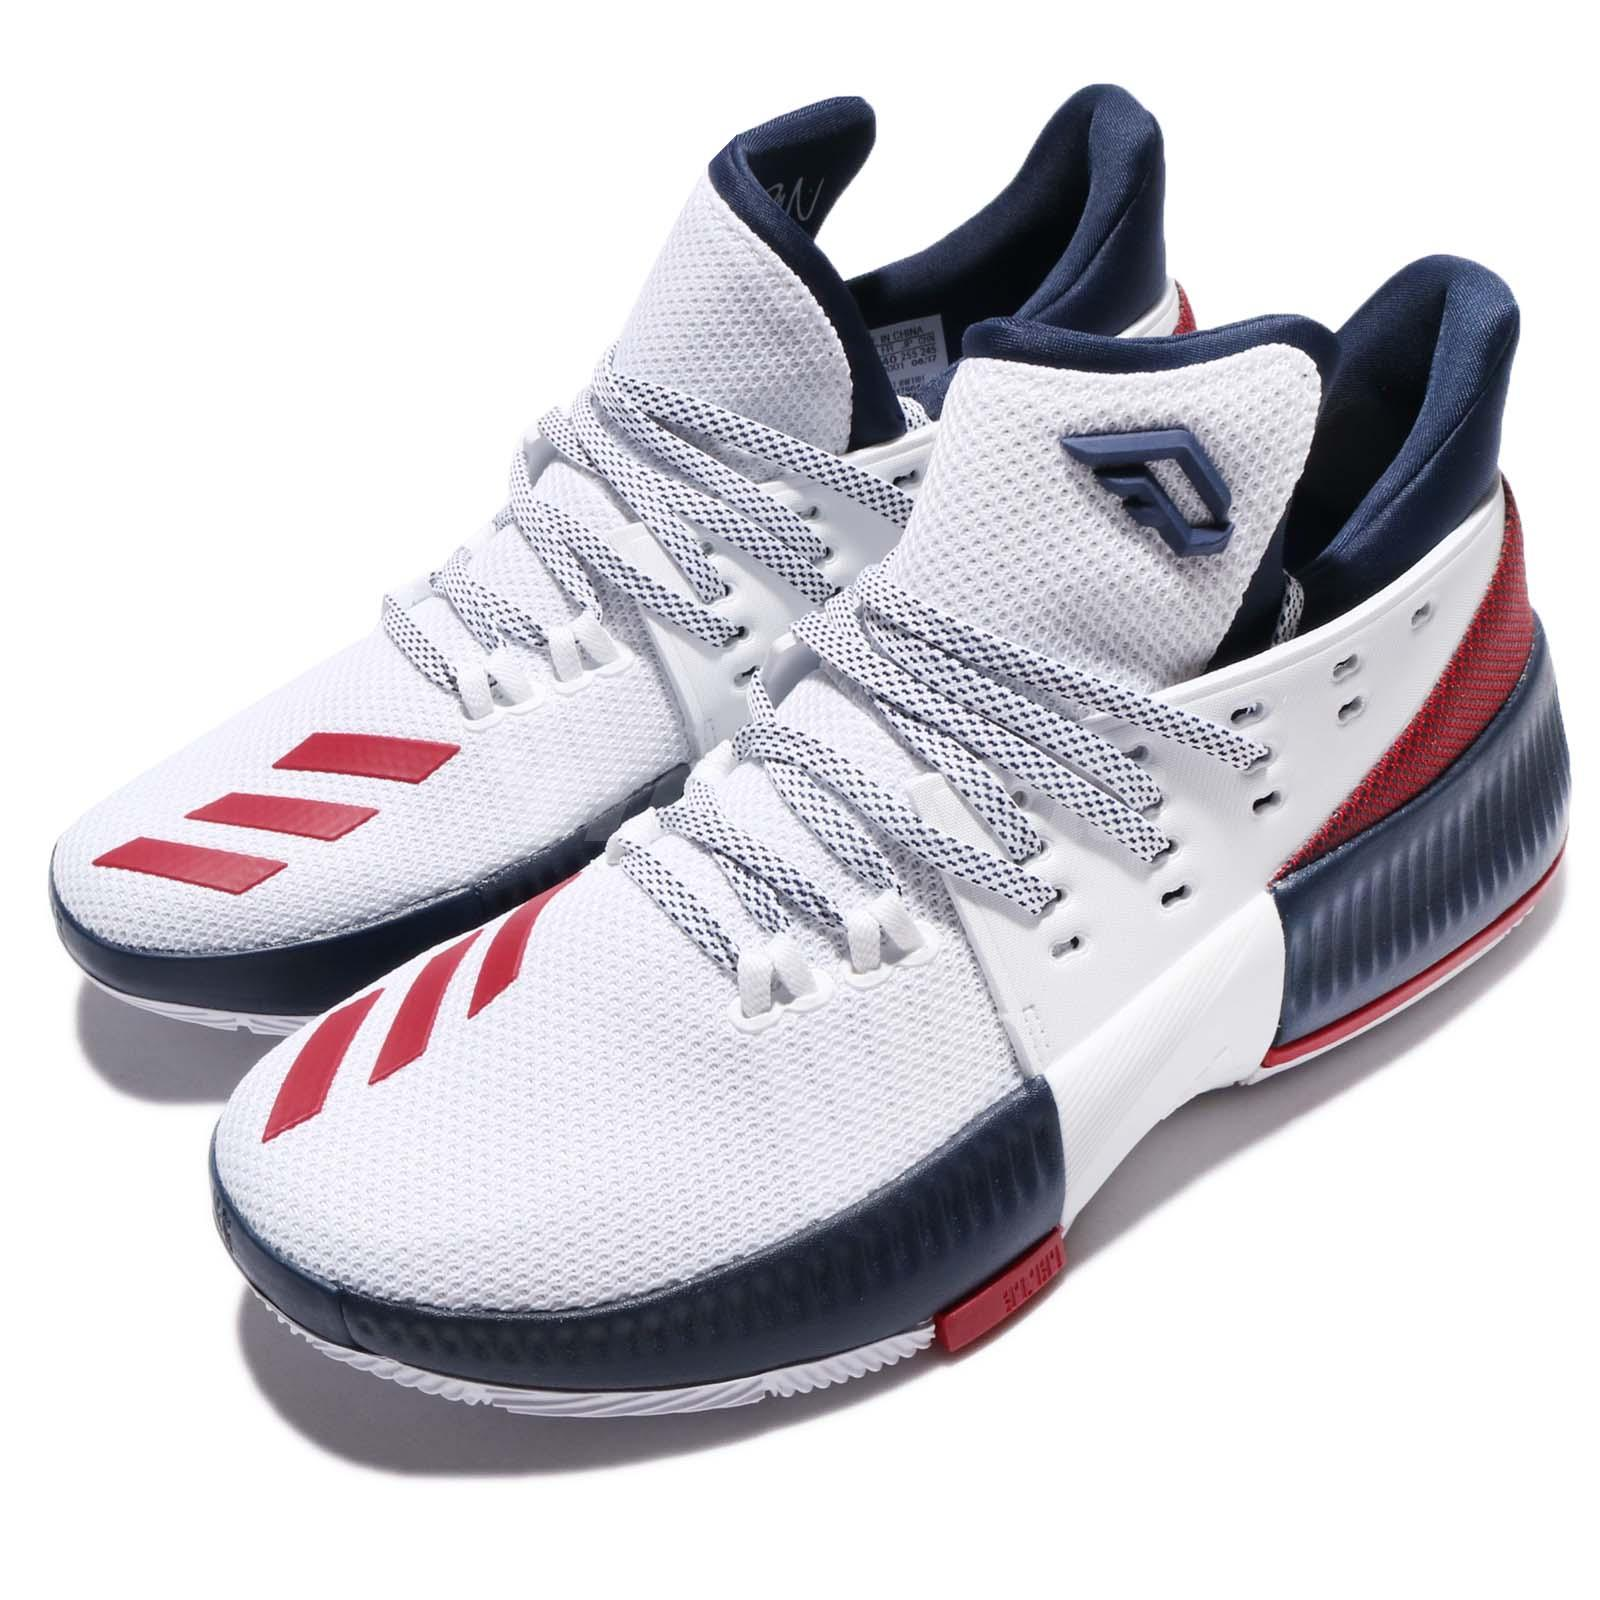 premium selection 39164 f2bee adidas Dame 3 J Damian Lillard Navy Red White Kids Basketbal